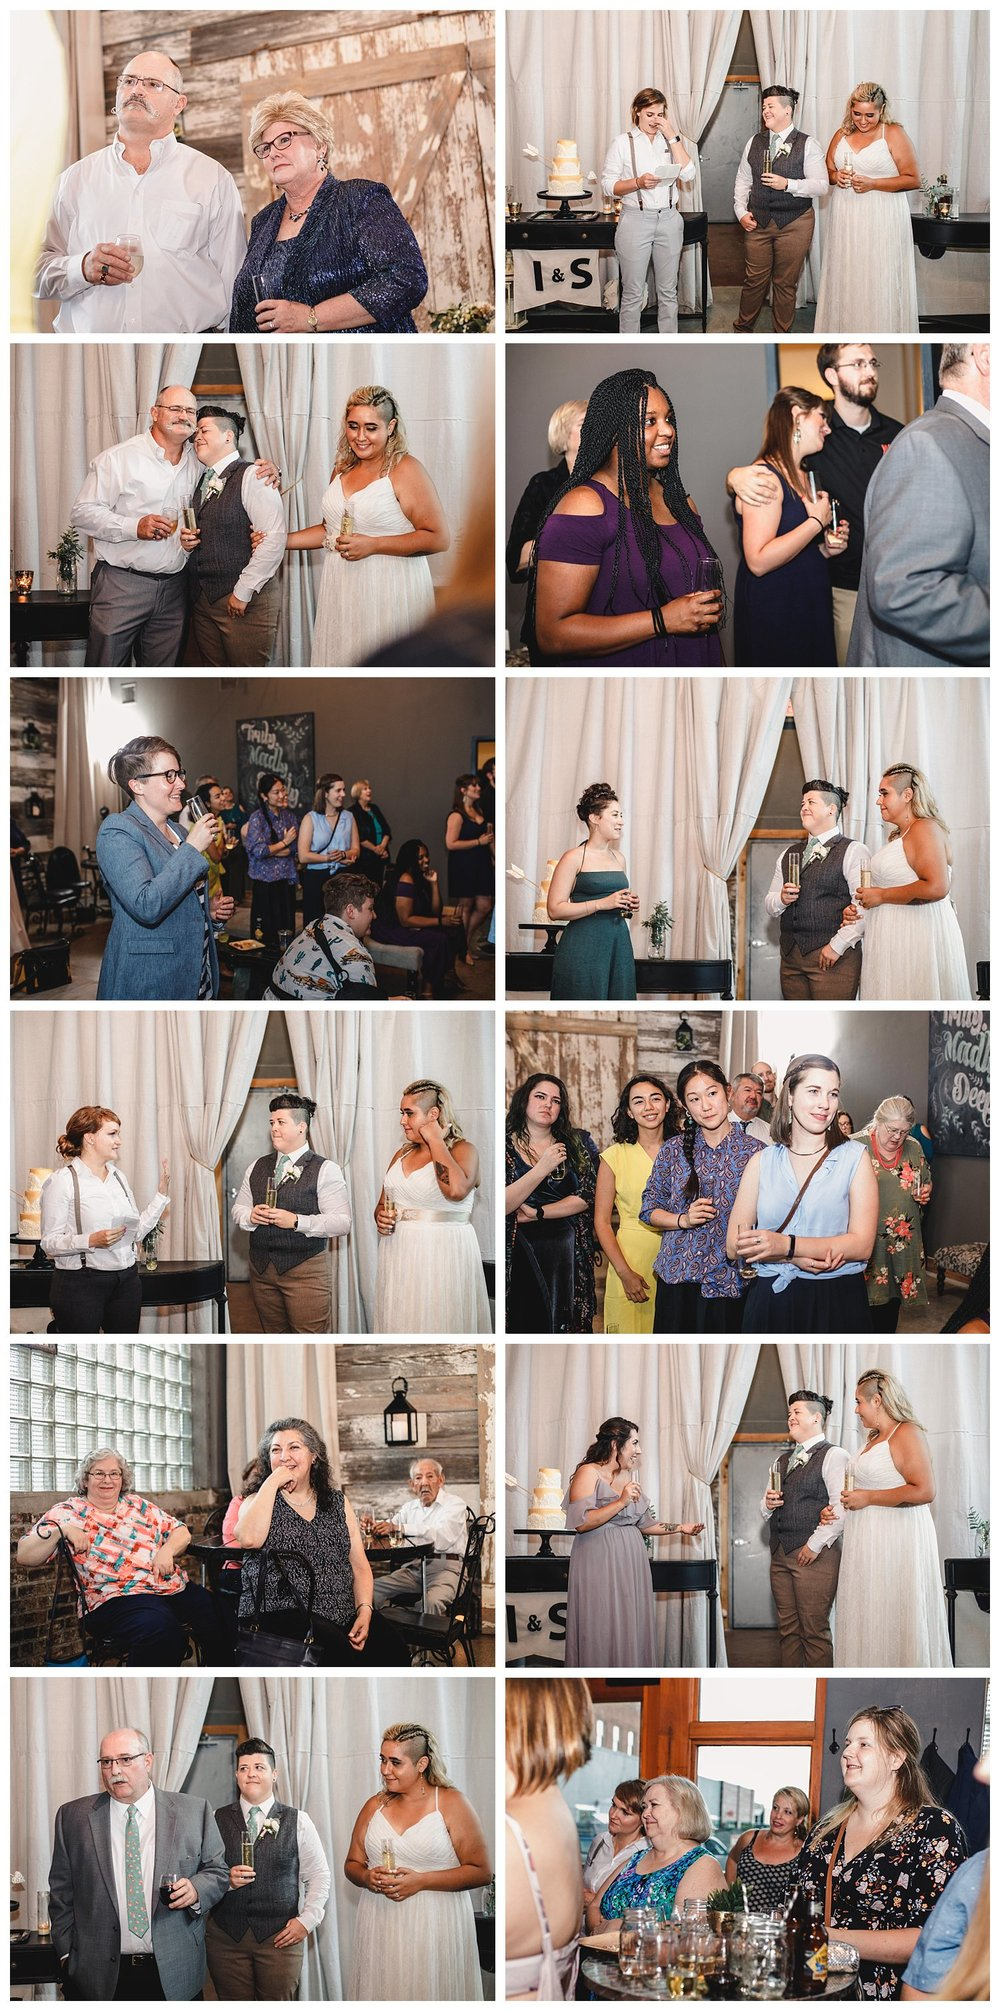 Kelsey_Diane_Photography_The_Vow_Exchange_Kansas_City_LGBT_Friendly_Wedding_Photographer_Kansas_City_Scout_Ica_0745.jpg